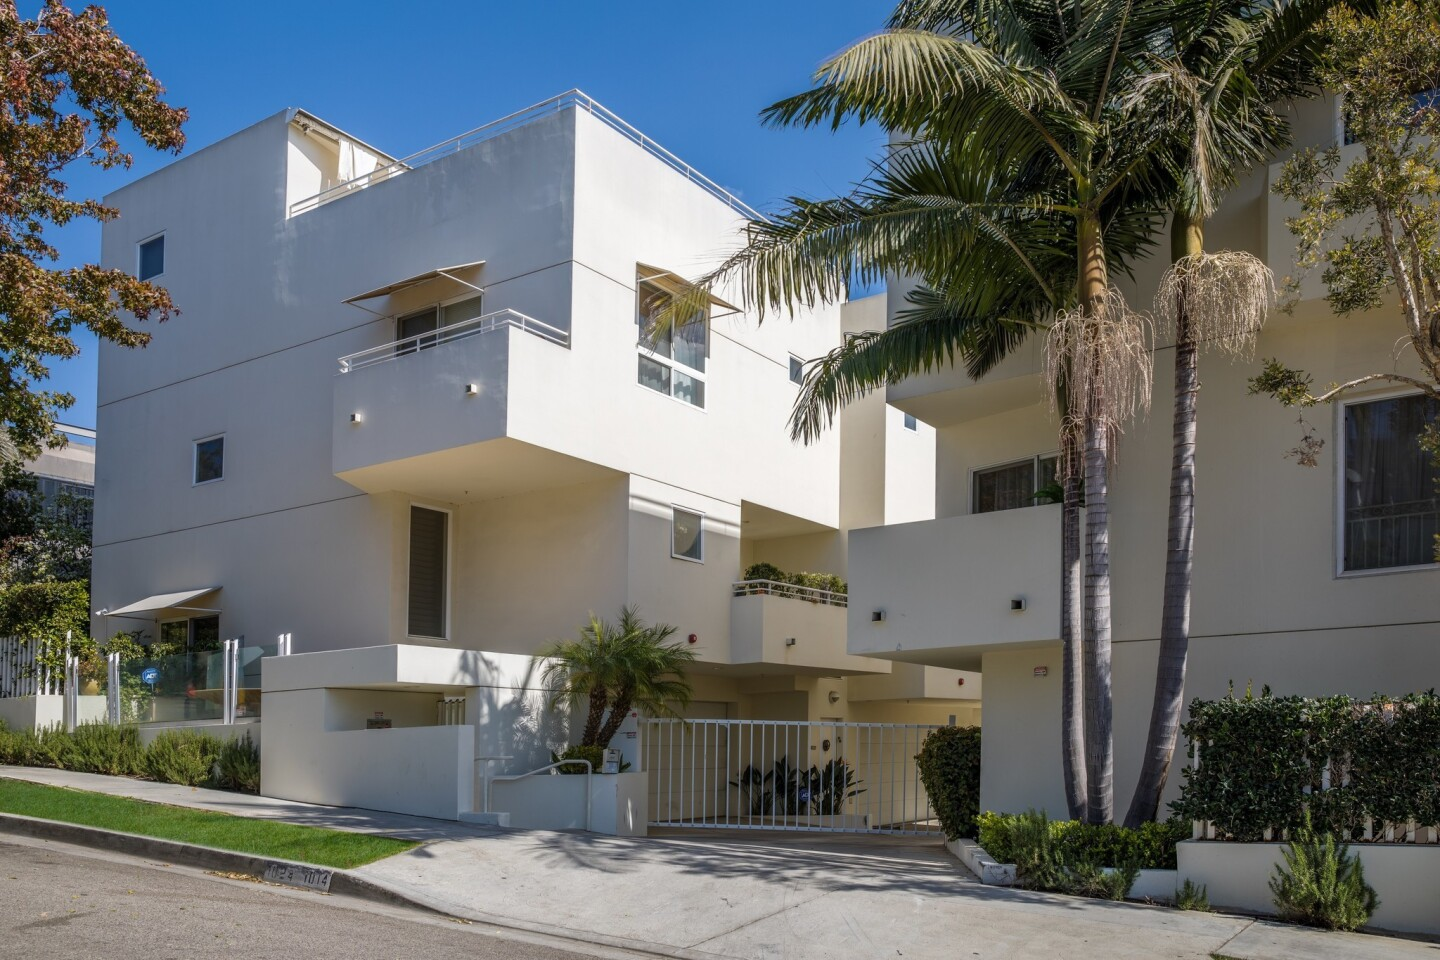 Cody Simpson's West Hollywood town home | Hot Property